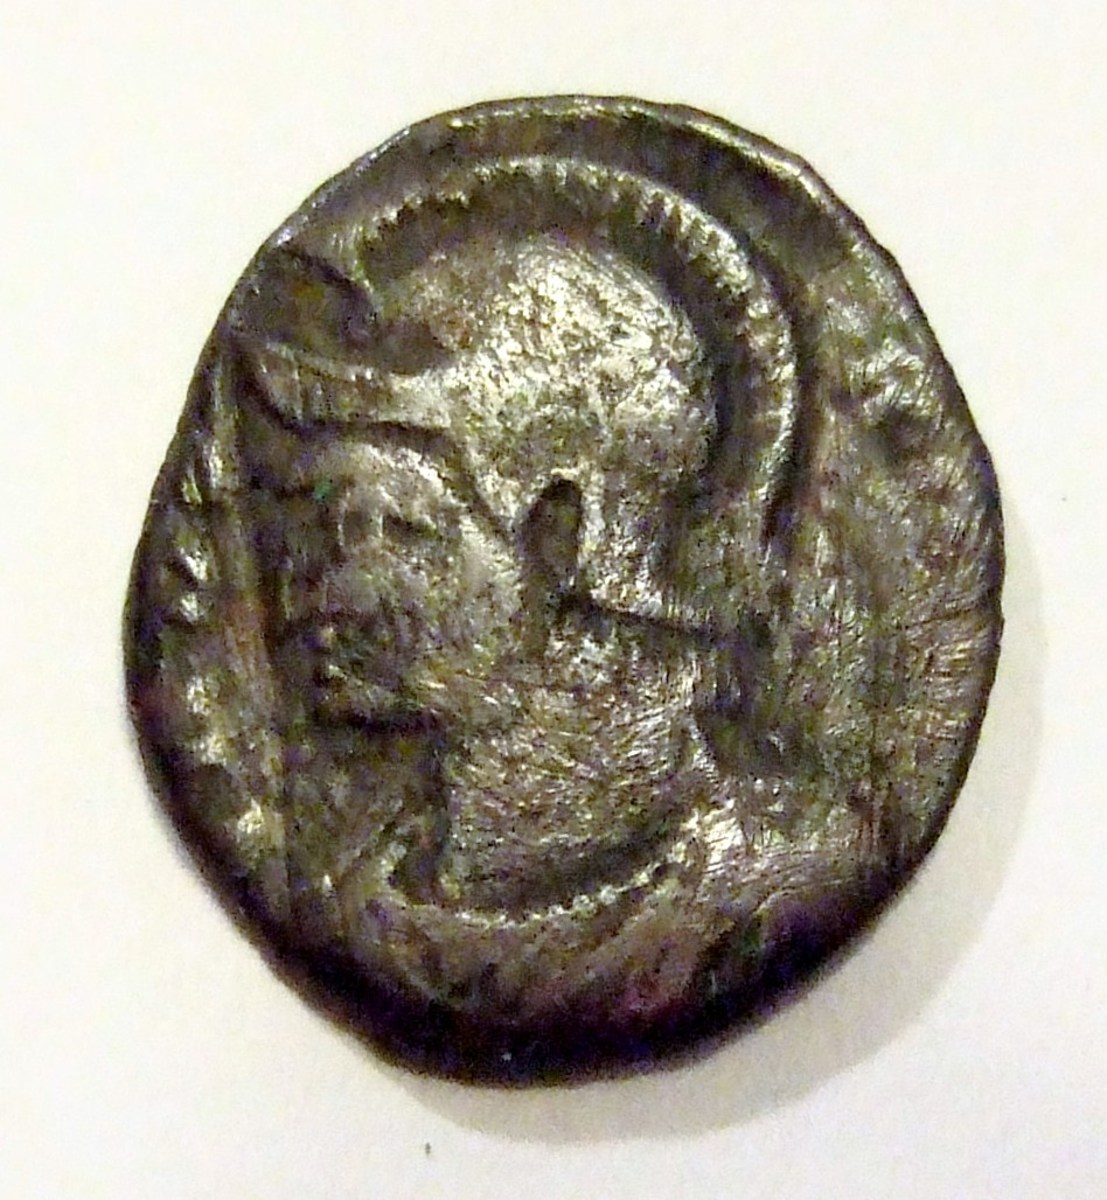 Helmeted portrait of Constantine the Great on this side of the coin, slightly larger but much thicker than a dime.